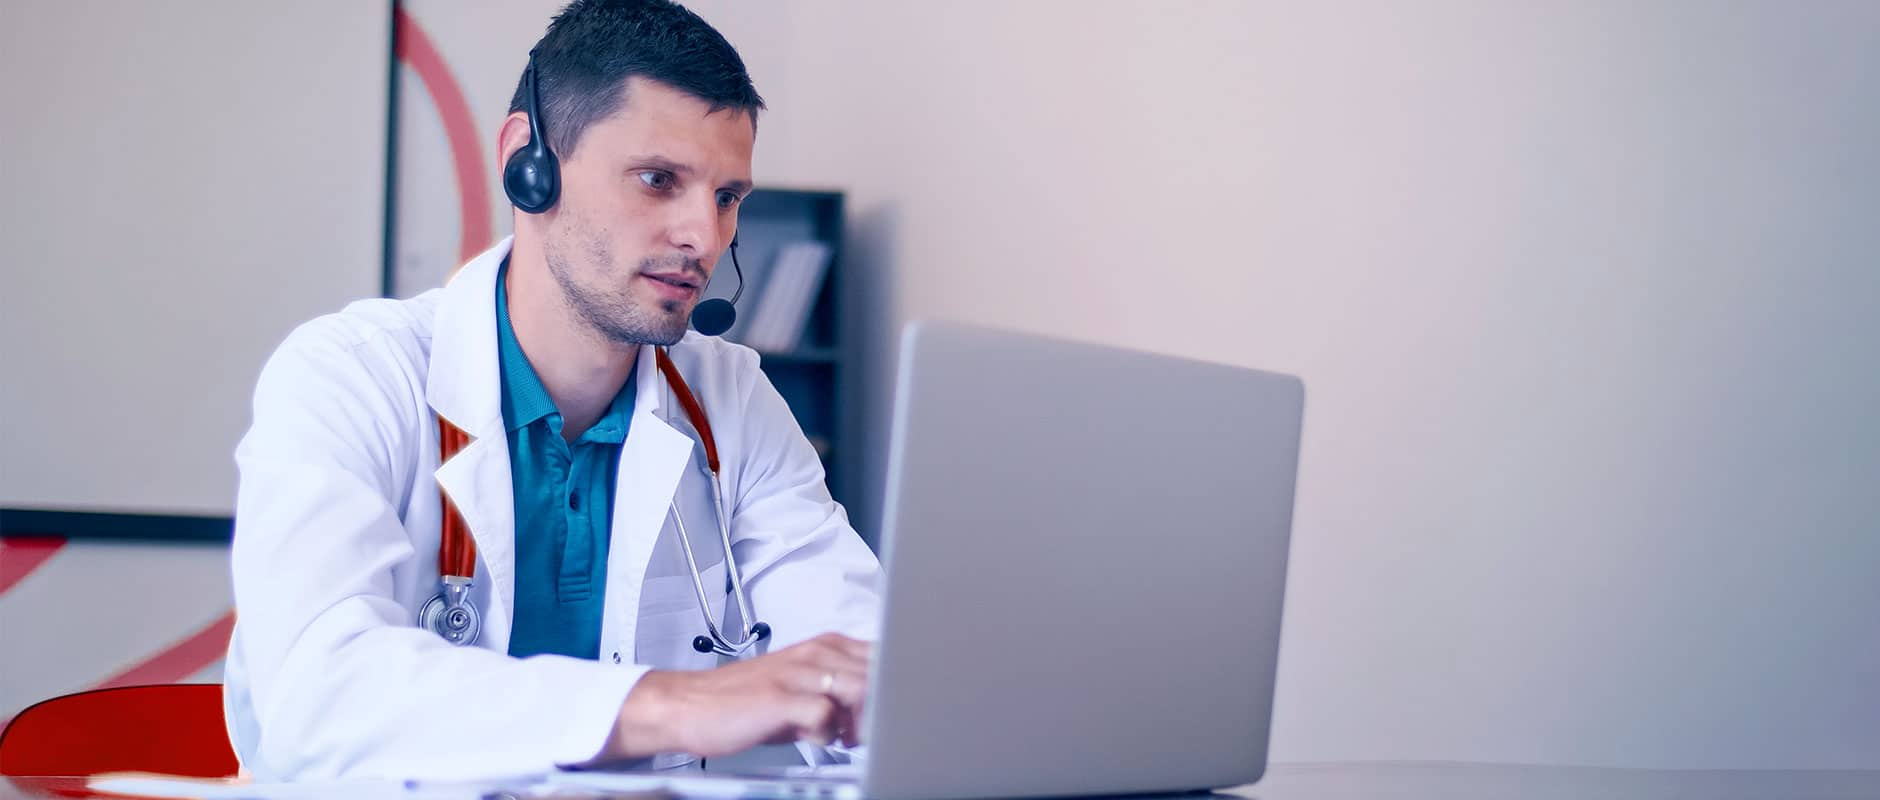 Managing Patients Remotely